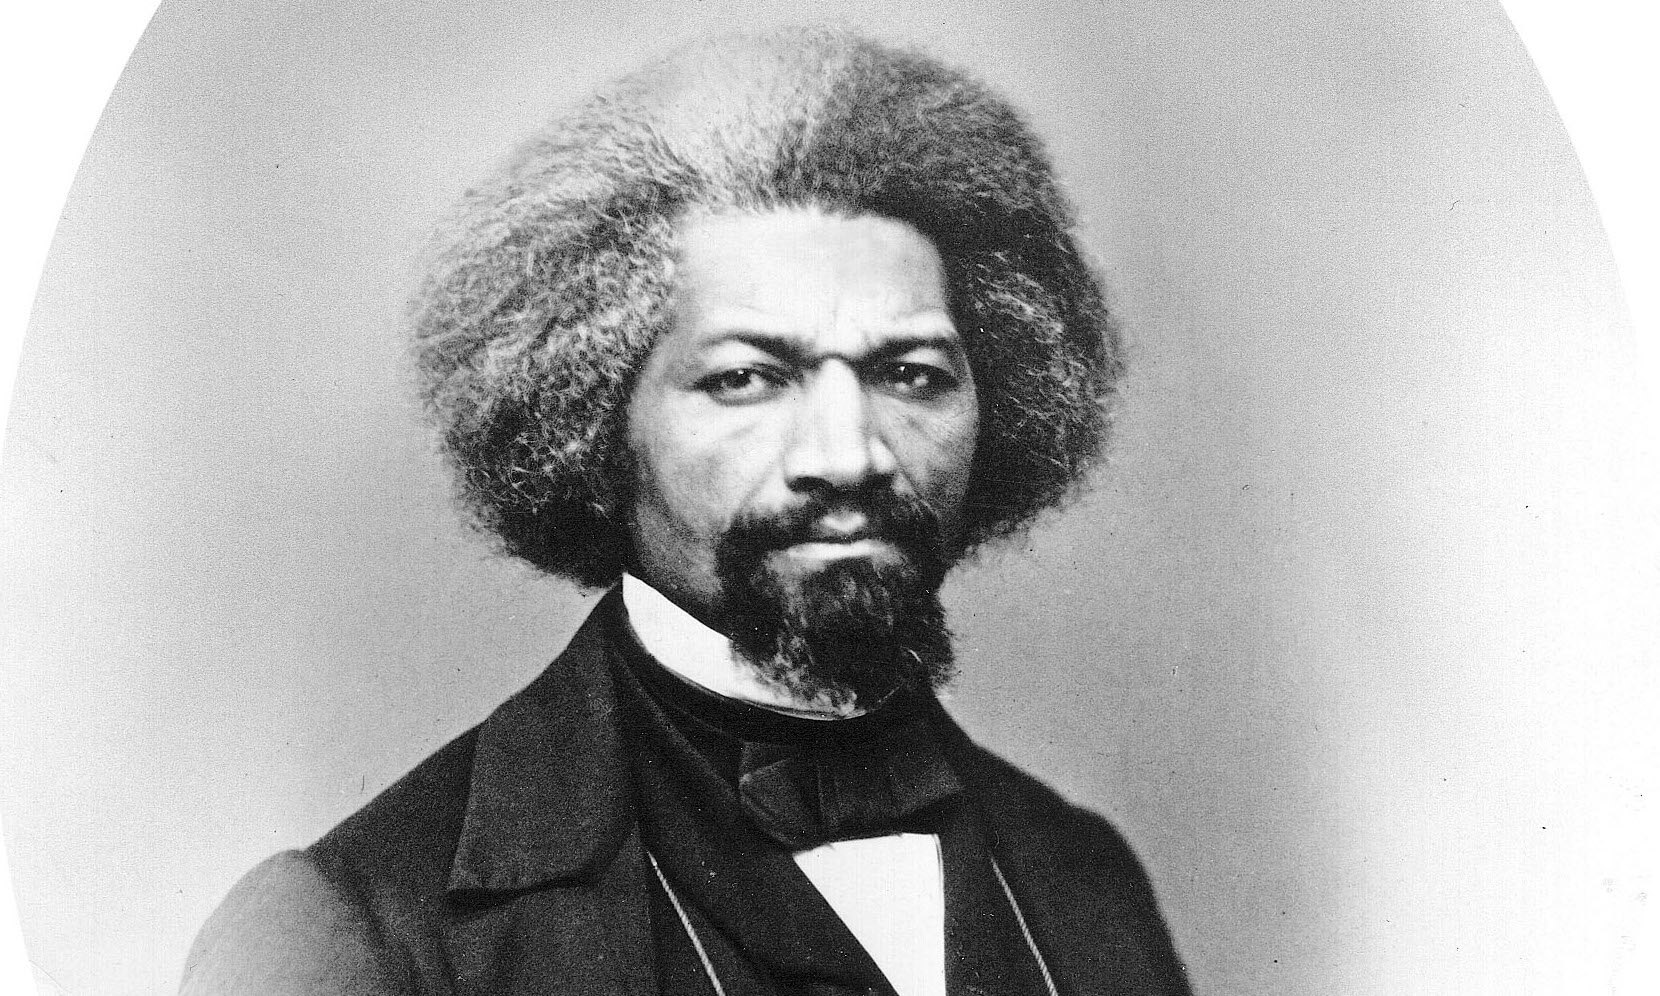 Frederick Douglass, an African American who was one of the most eminent human rights leaders of the 19th century. His oratorical and literary brilliance thrust him into the forefront of the U.S. abolition movement, and he became the first black citizen to hold high rank in the U.S. government